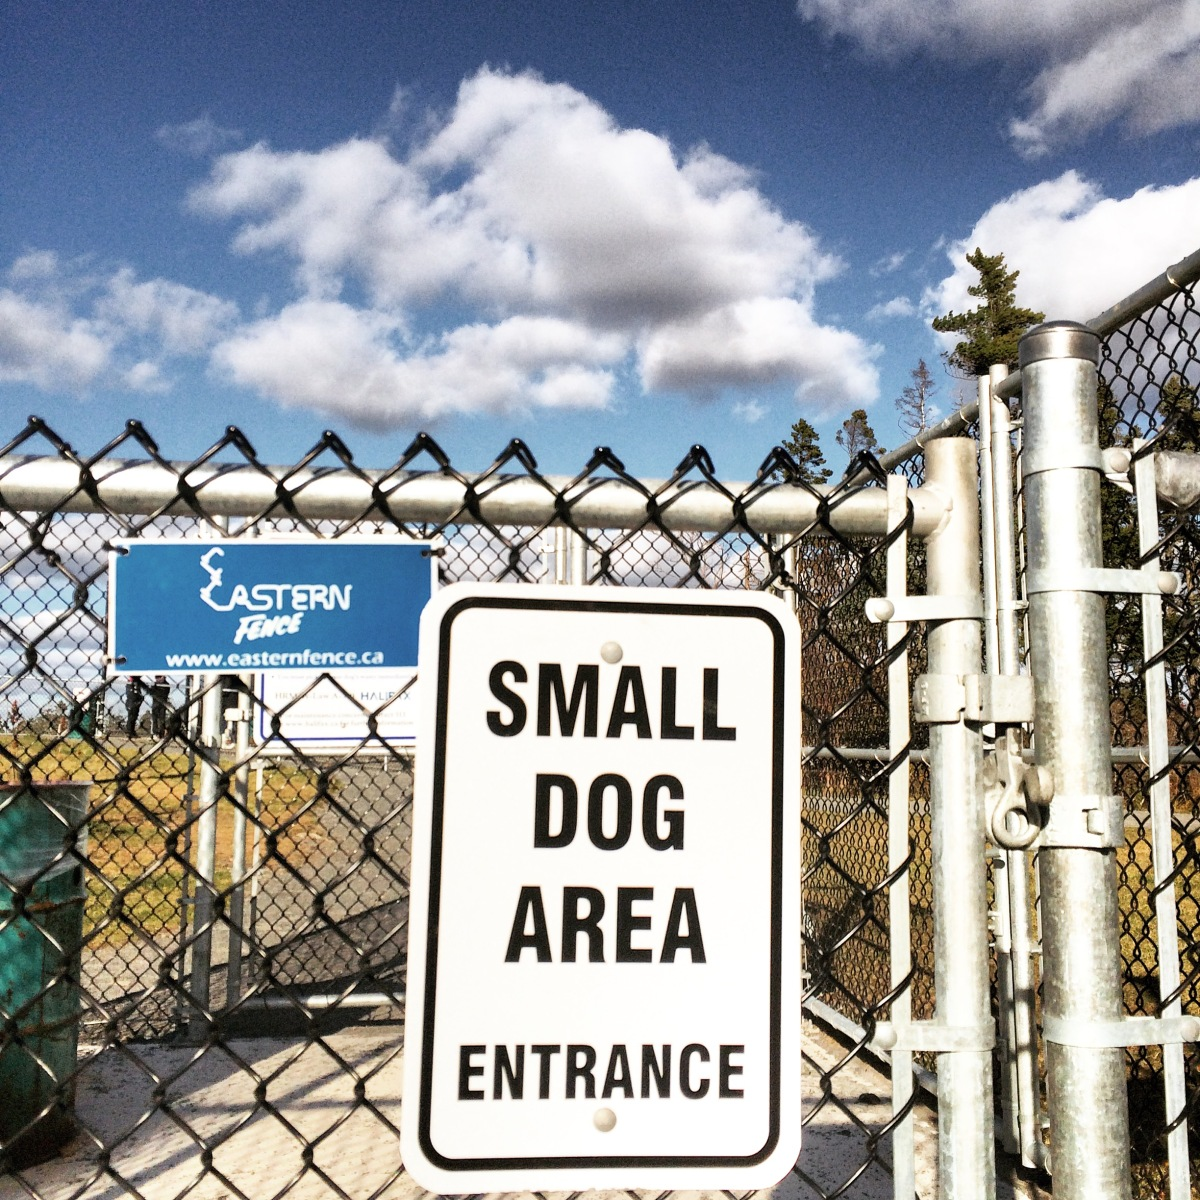 Mainland Common fenced-in off-leash dog park small dog entrance - blog review